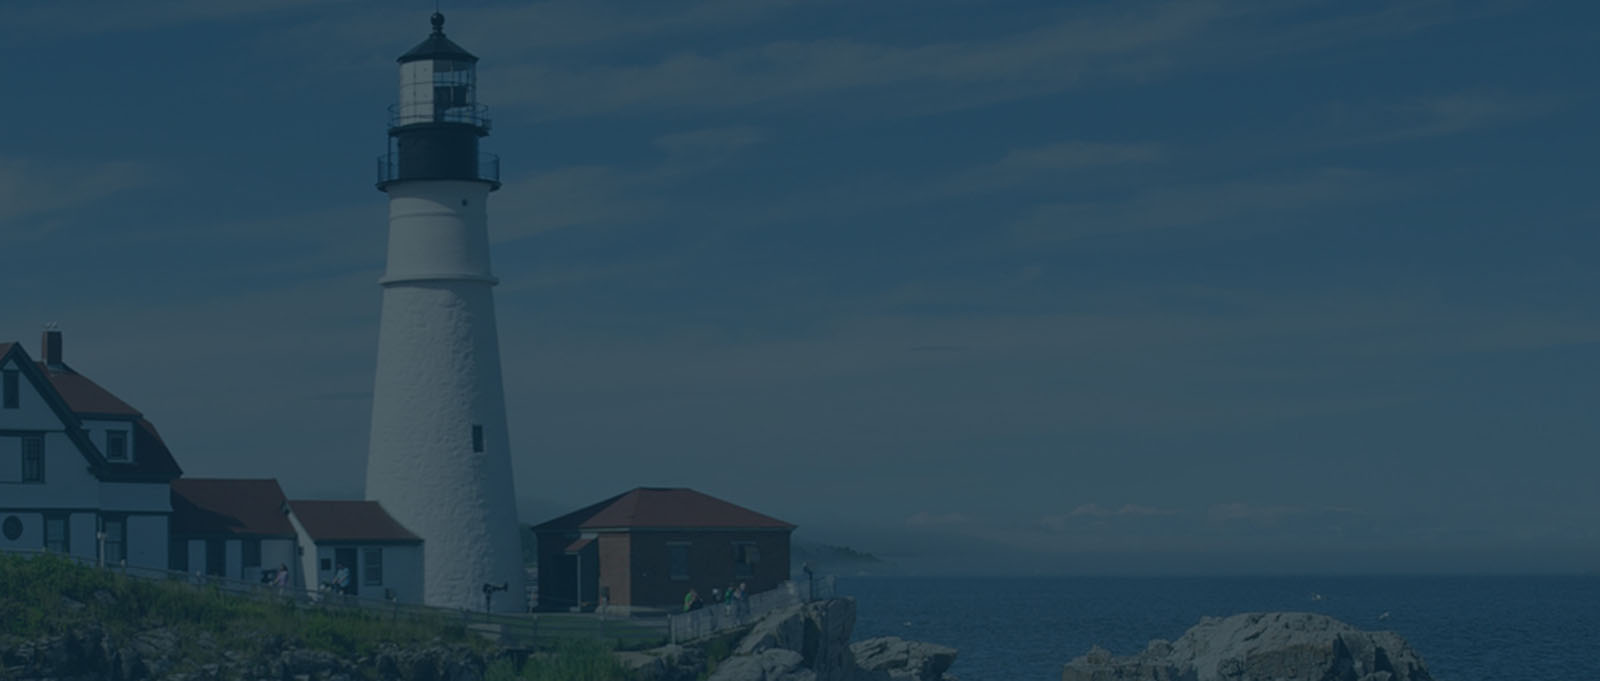 homepage-lighthouse.jpg